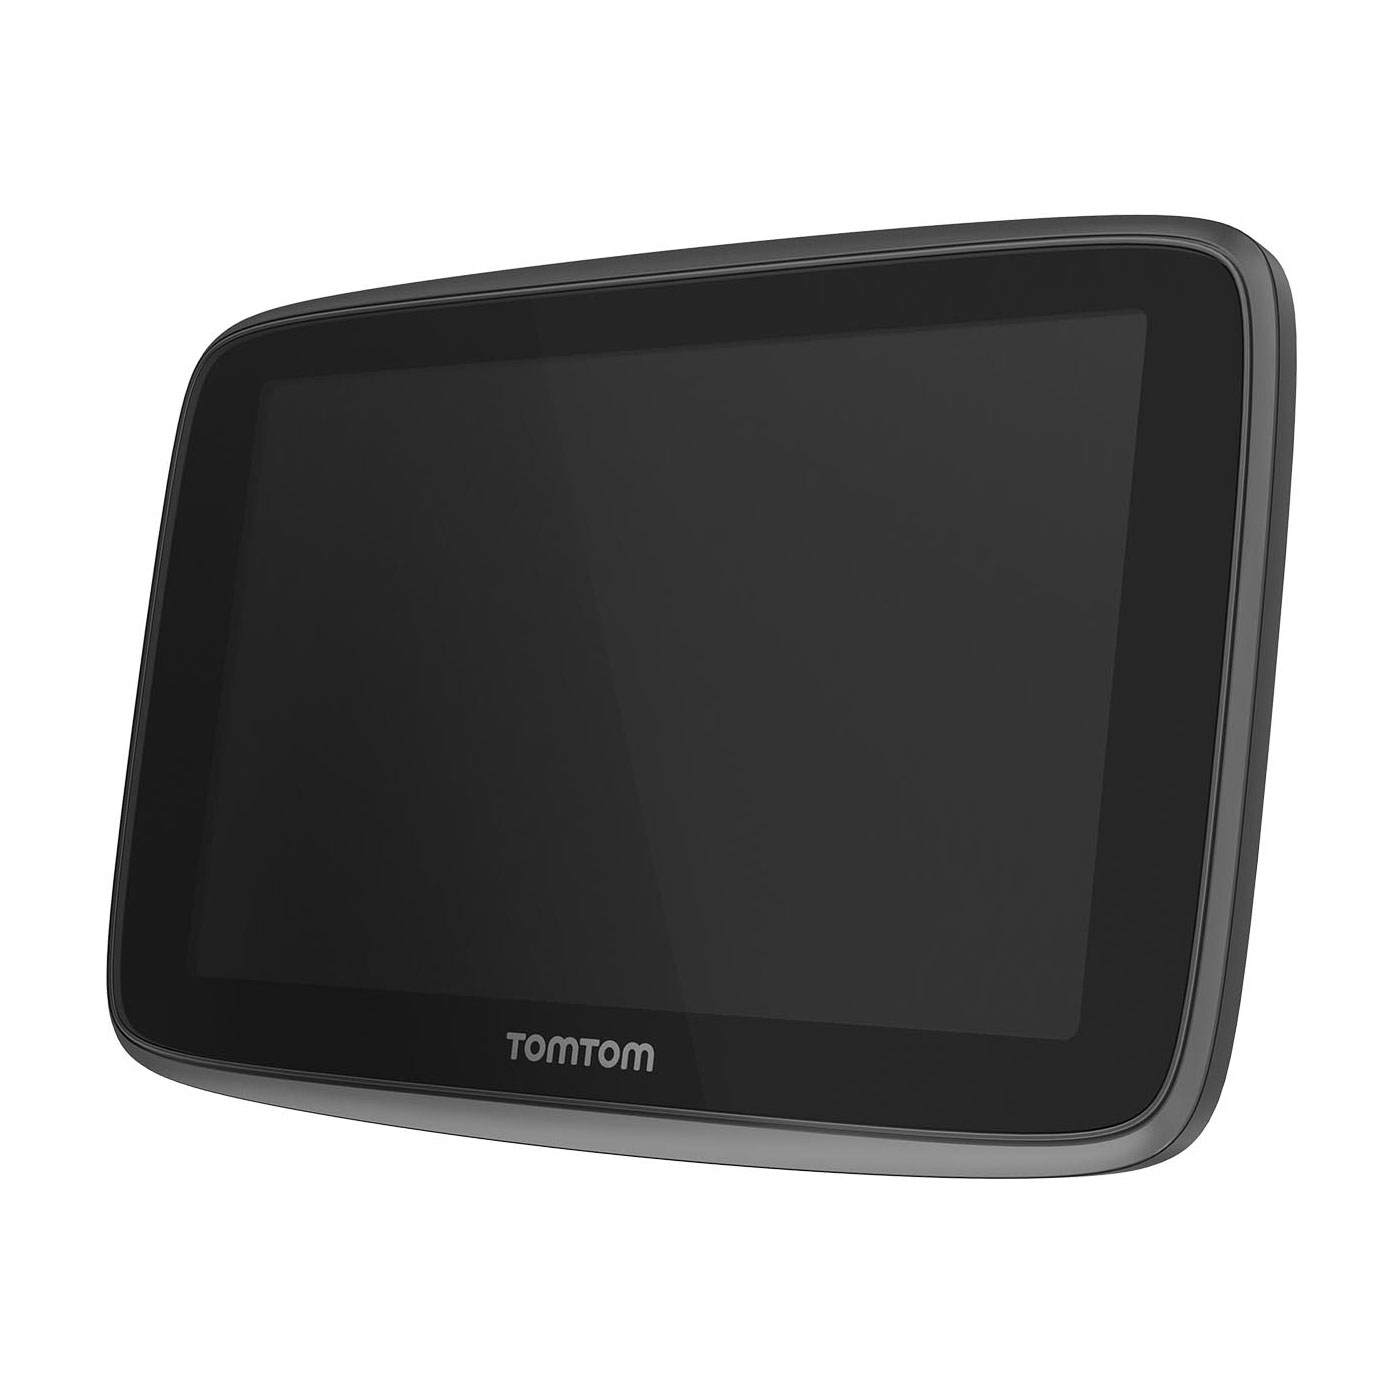 tomtom go 5200 gps tomtom sur. Black Bedroom Furniture Sets. Home Design Ideas